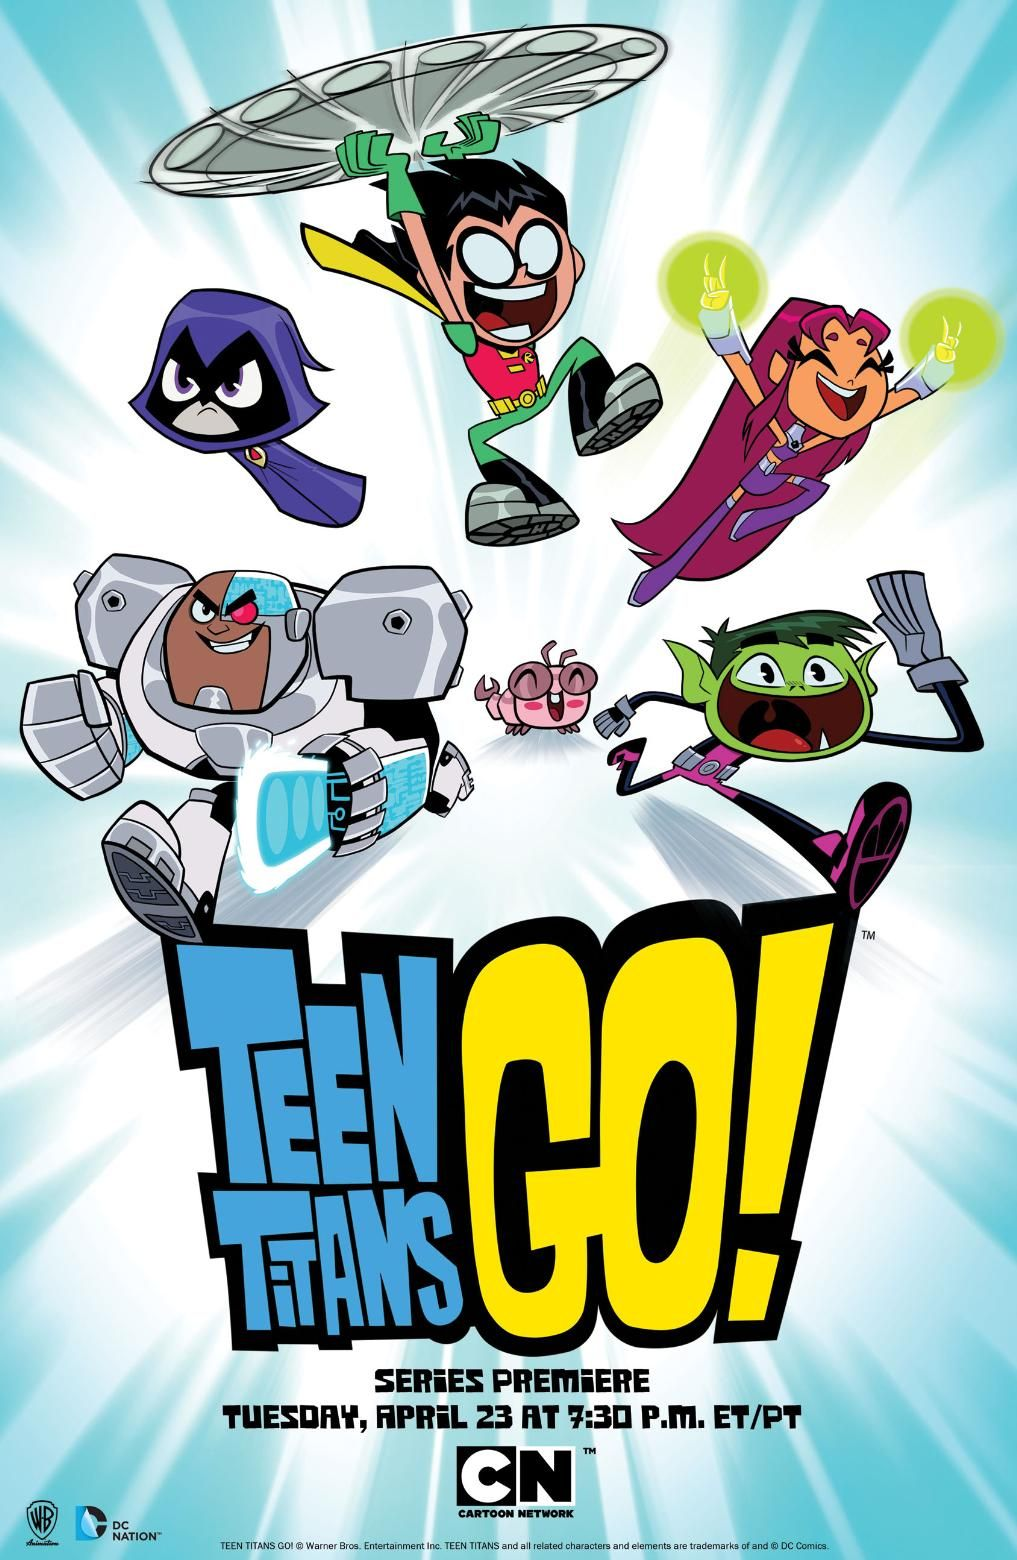 New Poster For Teen Titans Go Revealed So Excited That -4978